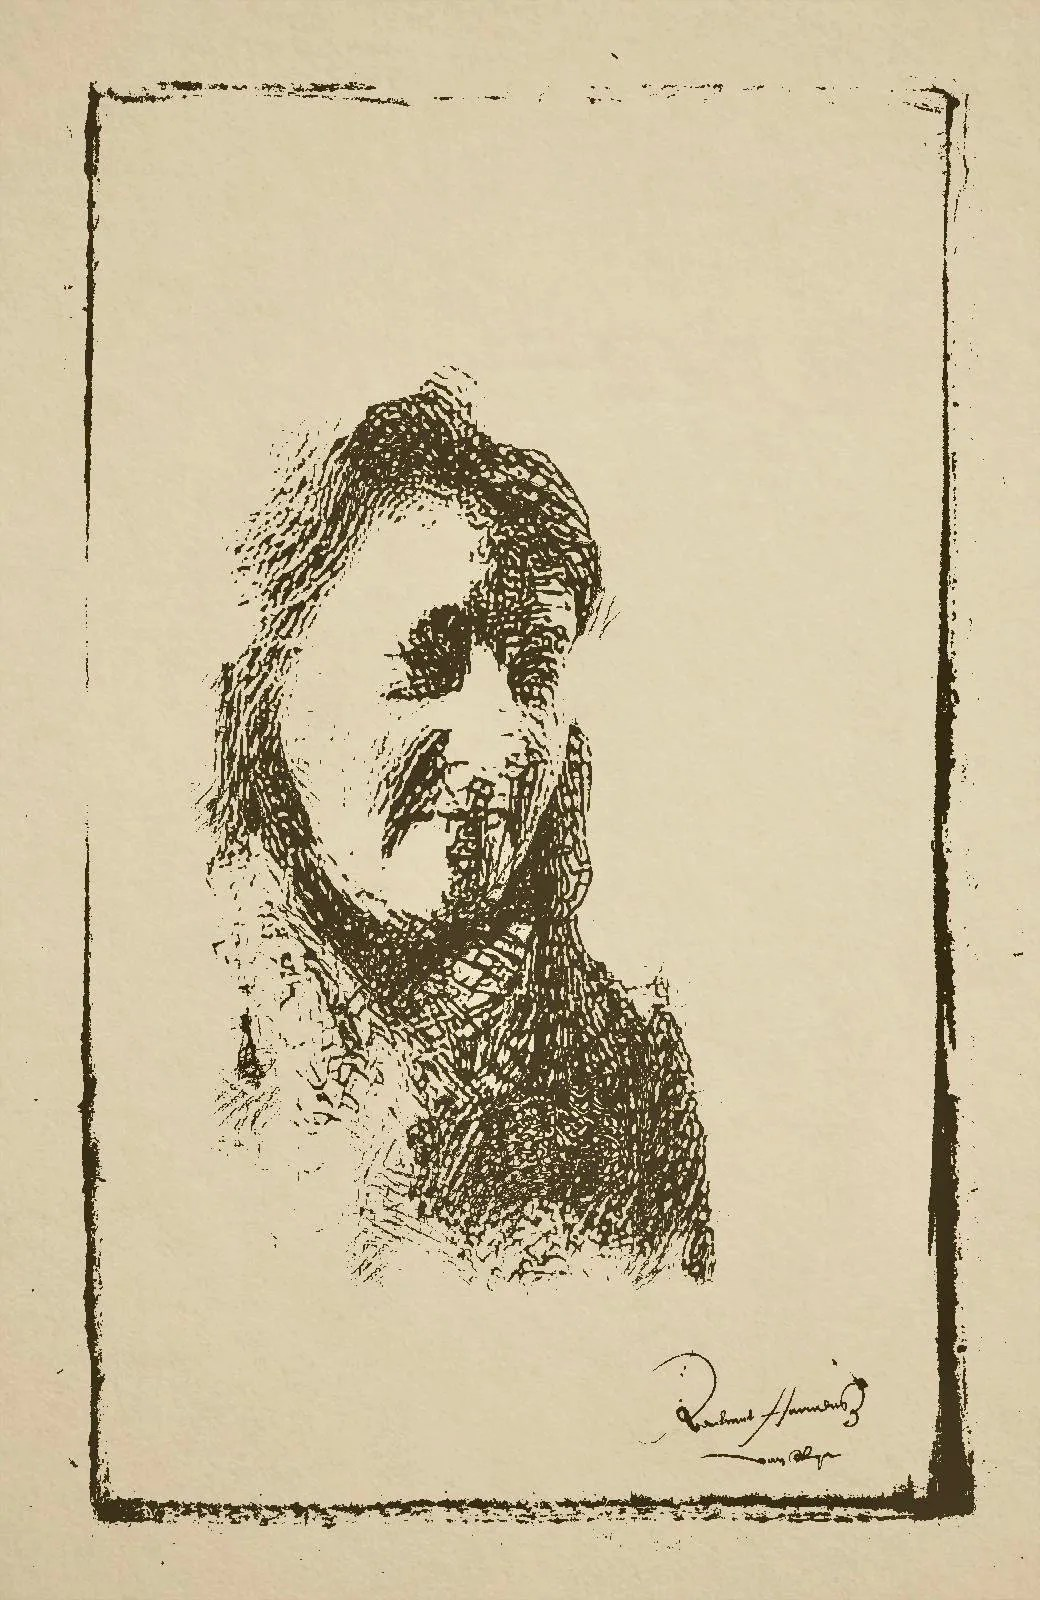 Portrait of a woman in the style of Rembrandt